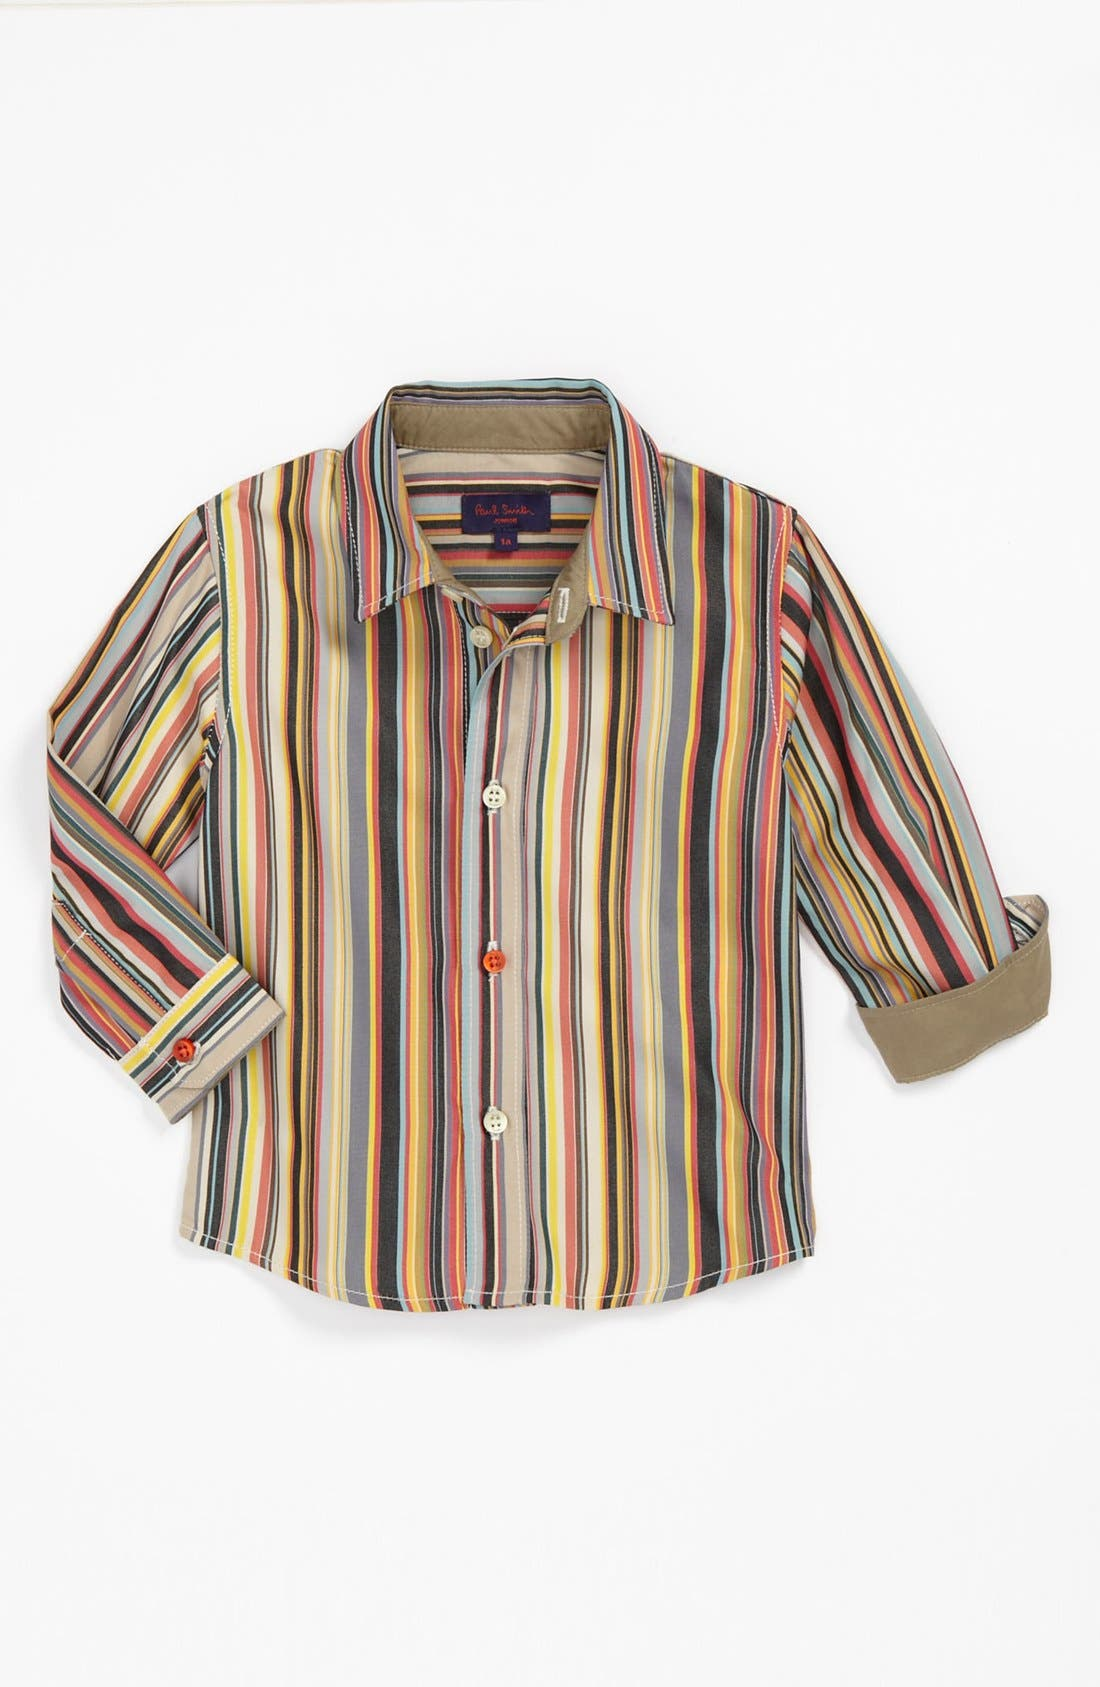 Main Image - Paul Smith Junior Woven Shirt (Toddler)